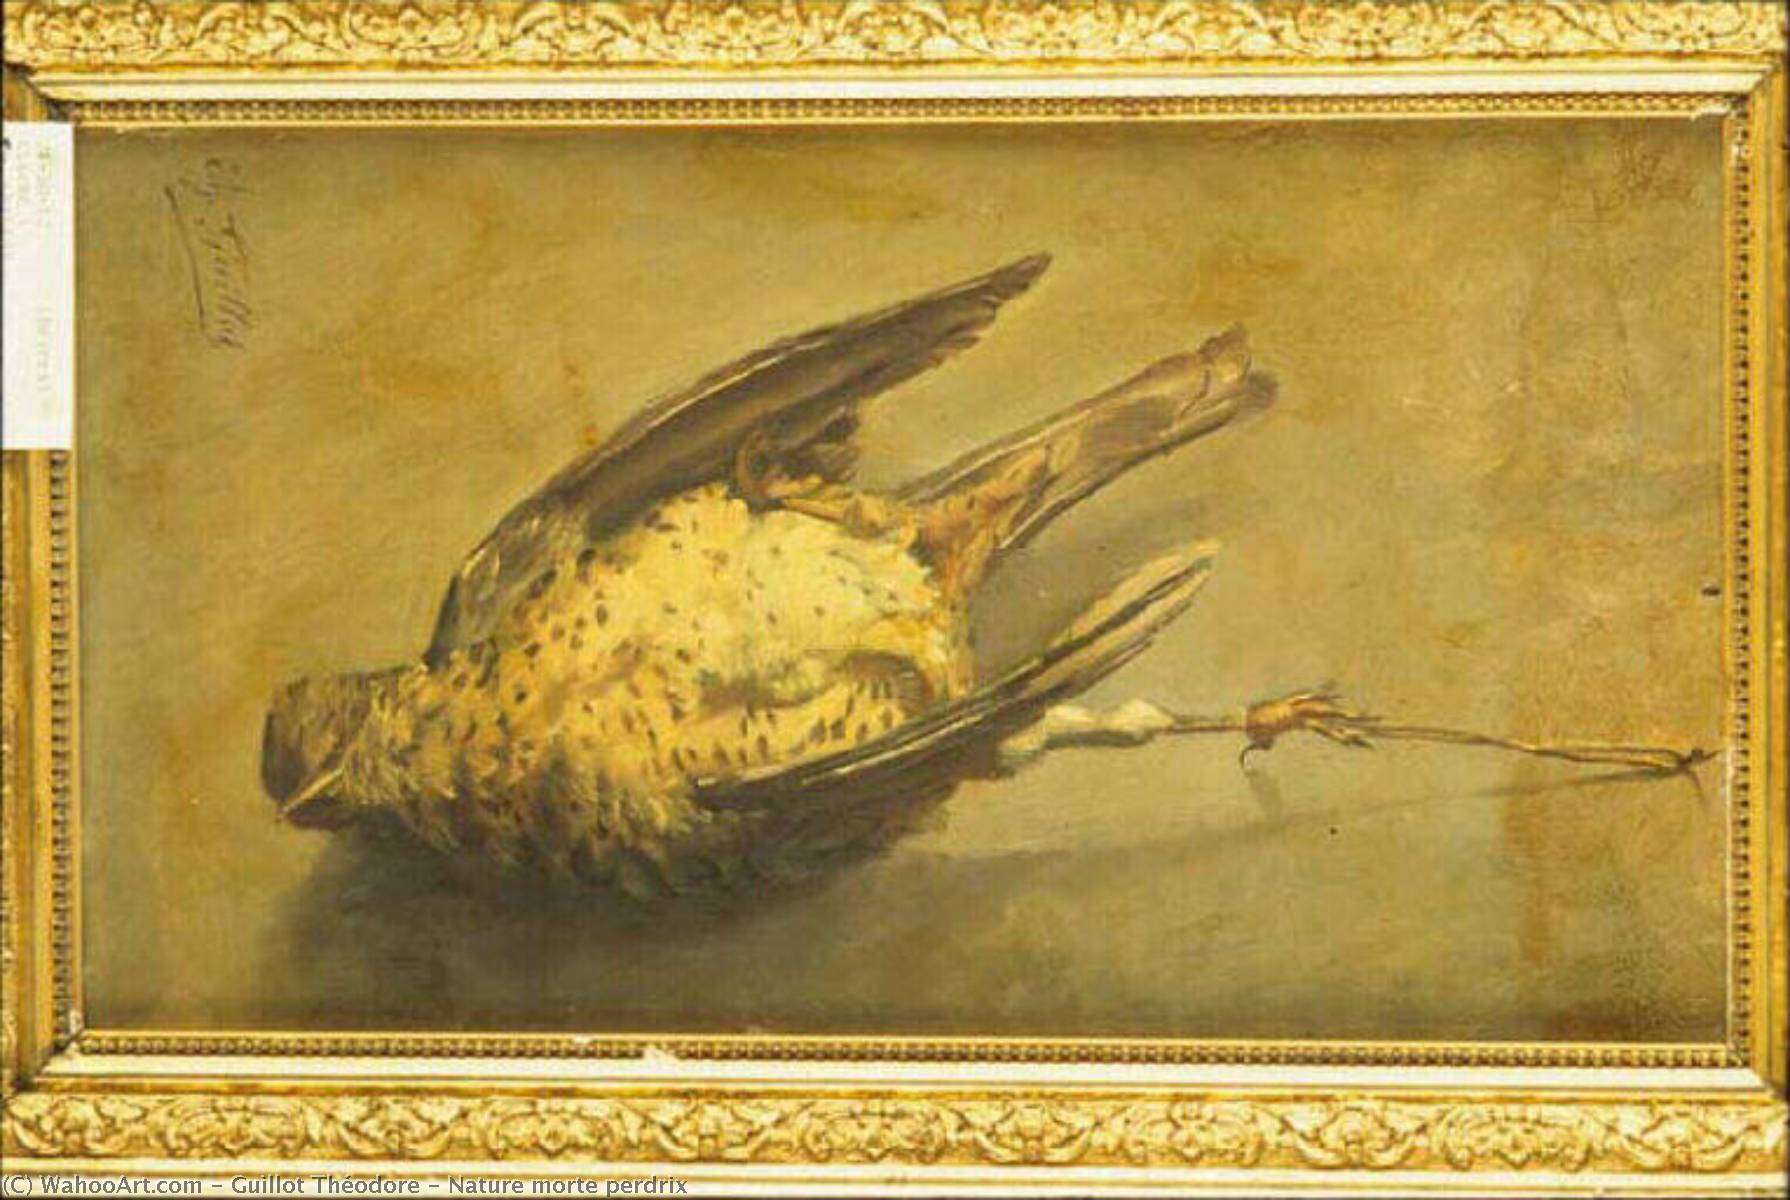 Nature morte perdrix, Oil by Guillot Théodore